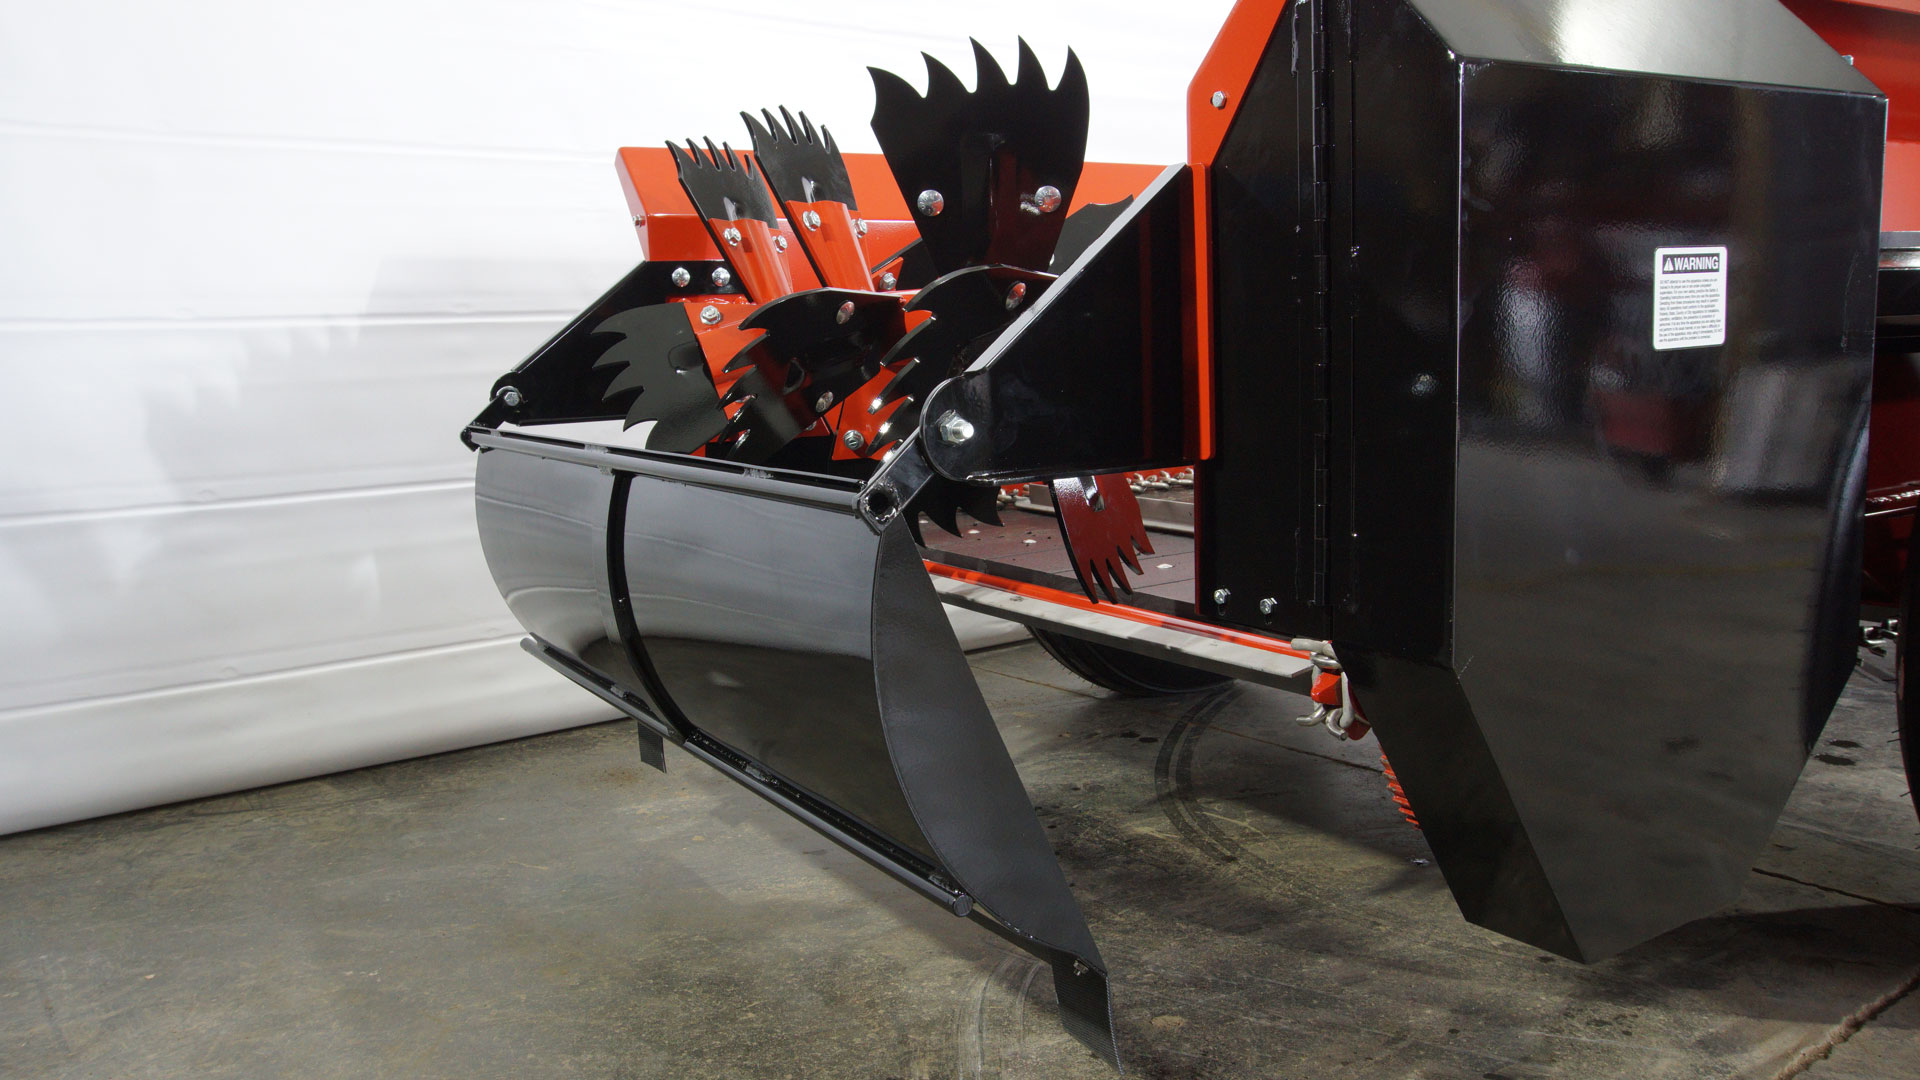 Horse manure spreader with fines pan by conestoga manufacturing.